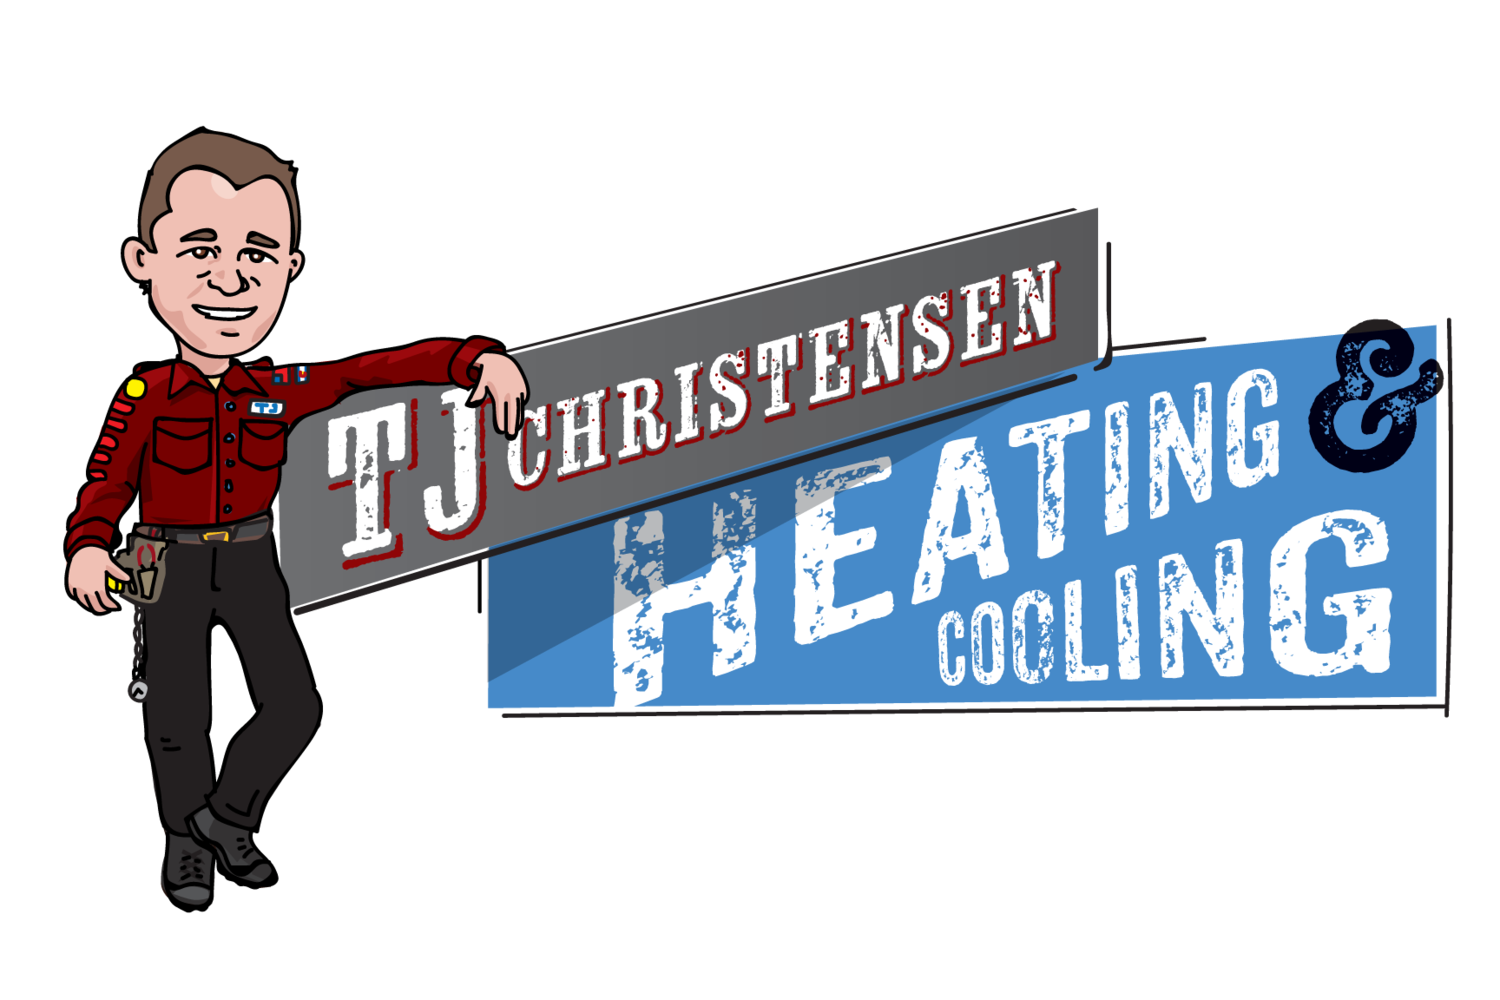 TJ Christensen Heating & Cooling